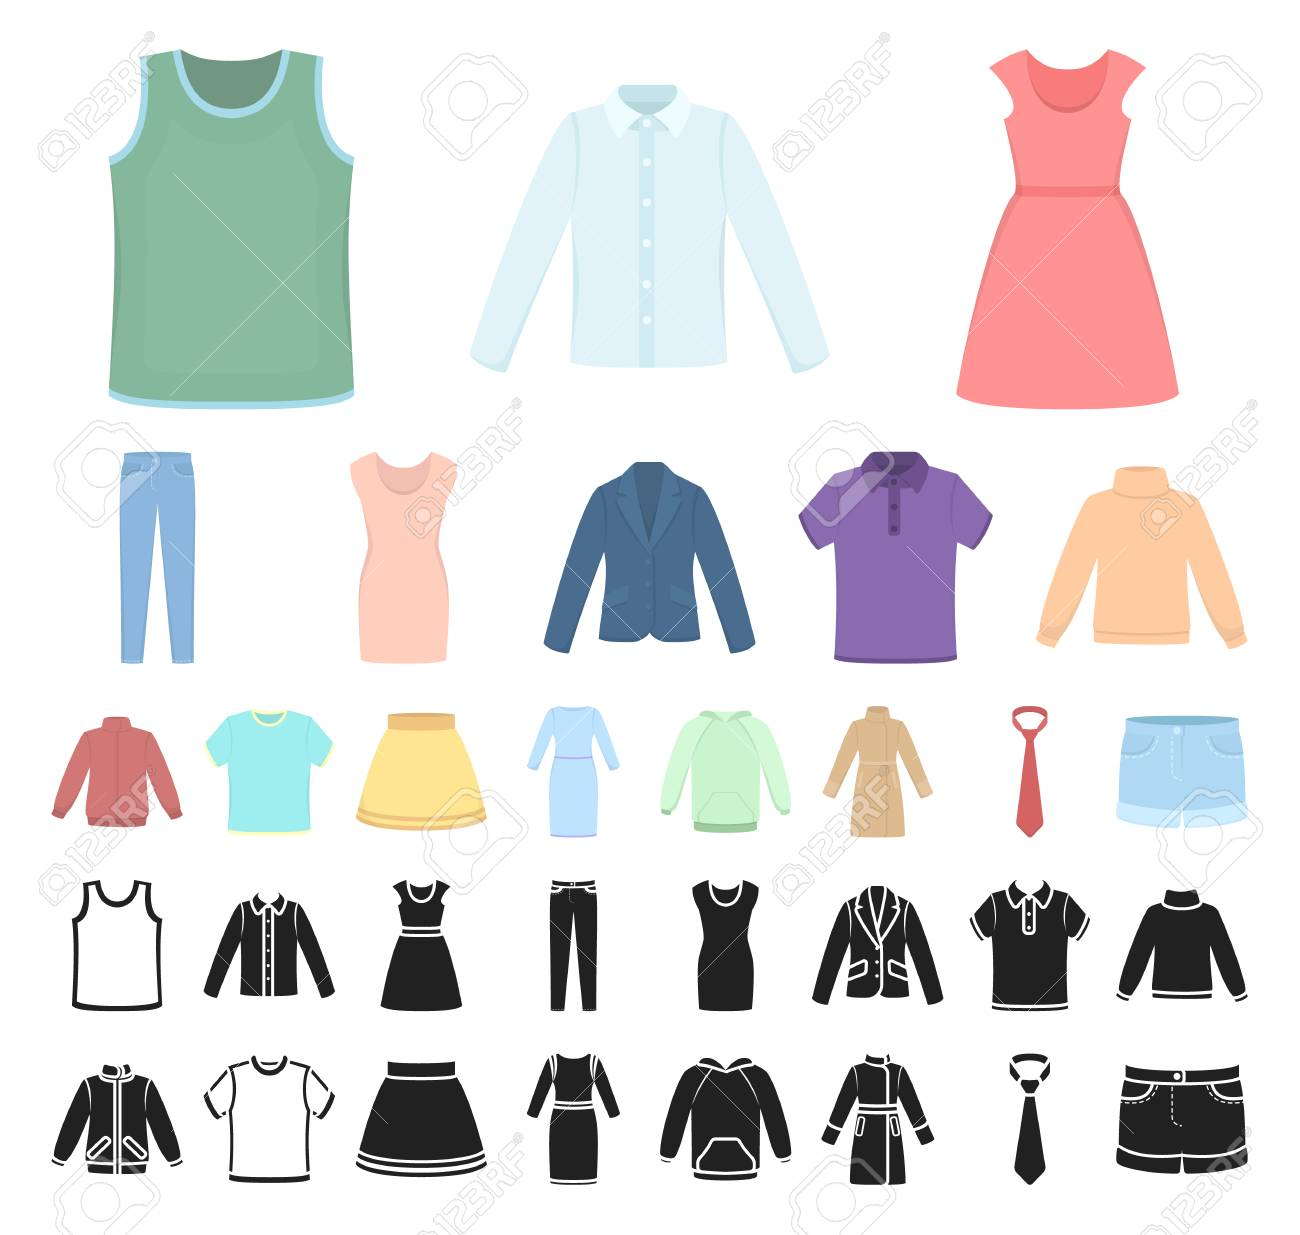 Different Kinds Of Clothes Cartoon Black Icons In Set Collection Royalty Free Cliparts Vectors And Stock Illustration Image 113967660